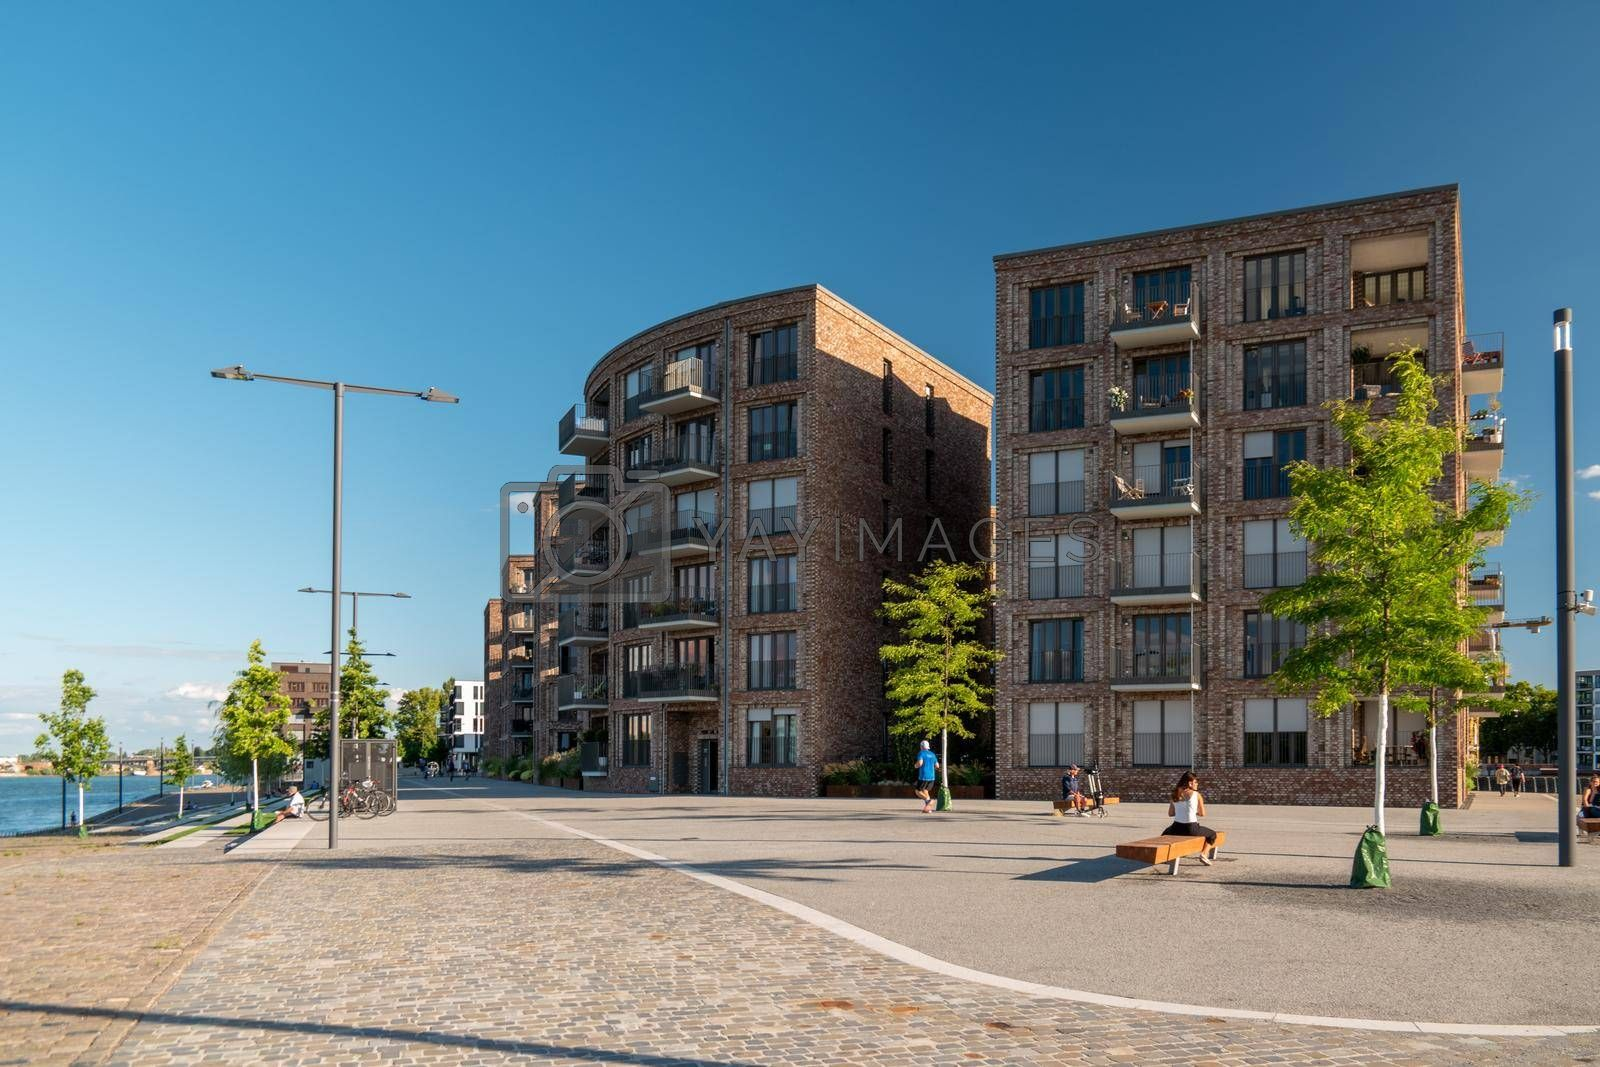 Mainz, Rheinland-PfalzGermany August 2020 , New just built structures apartment condo at port on river Rhein in Mainz by the rhine river. Europe